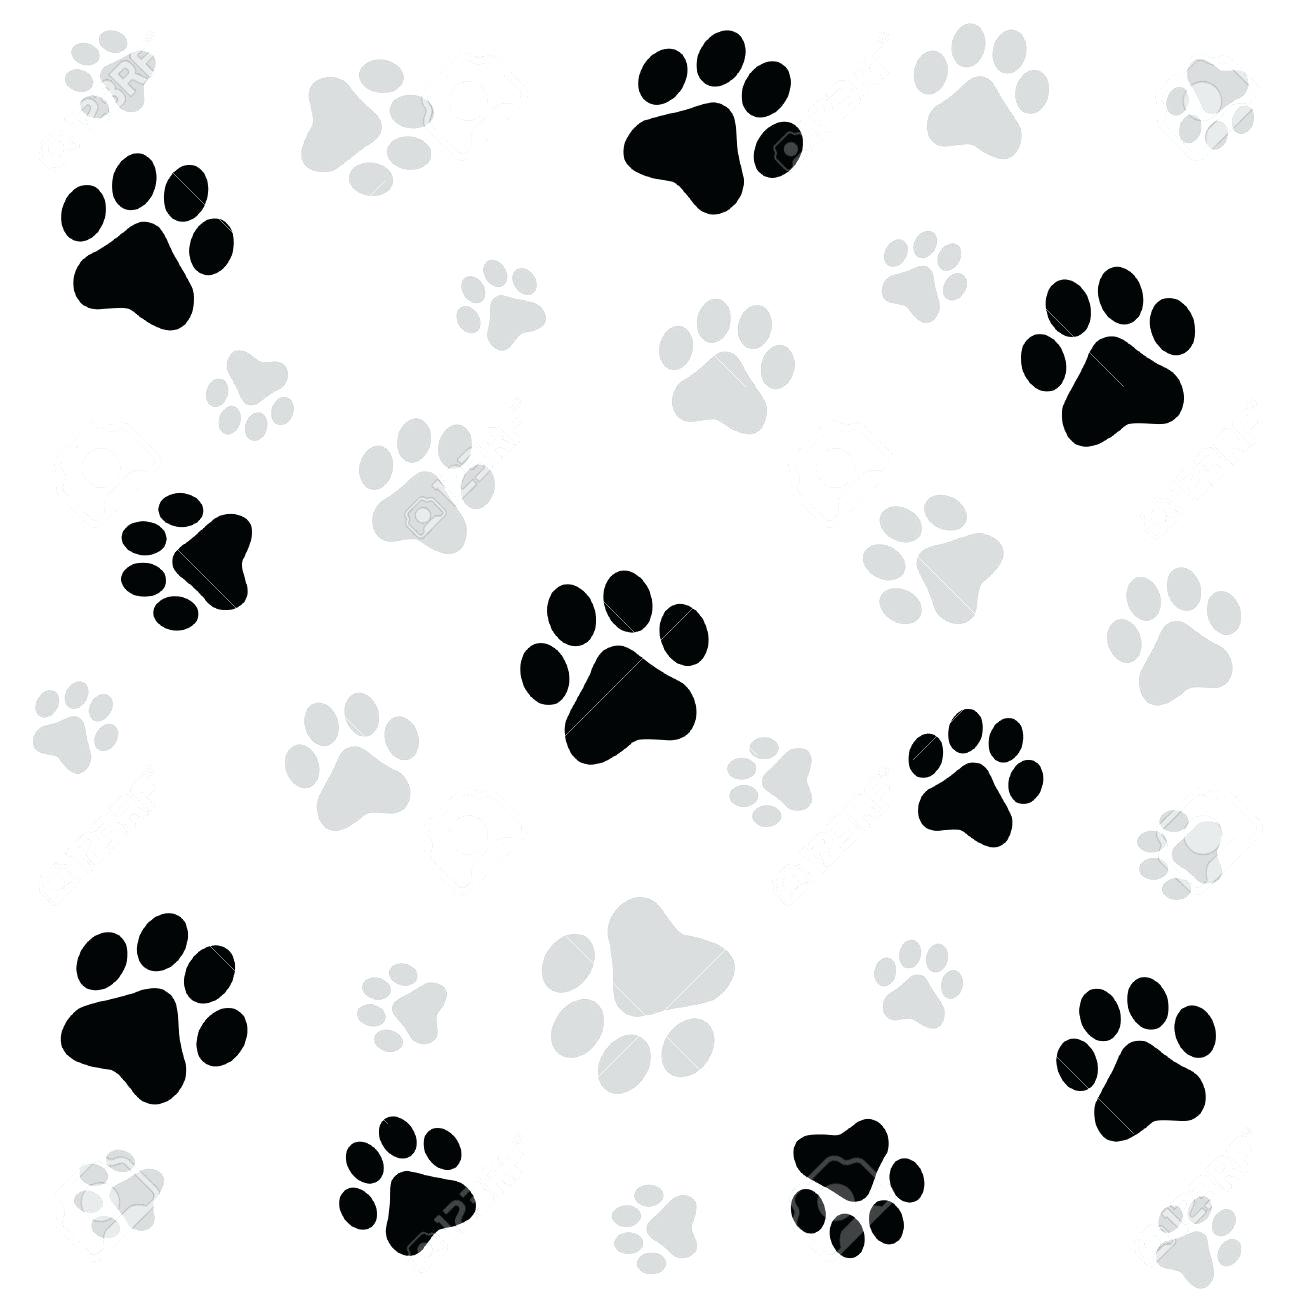 1300x1300 Footprint Outline Dog Paw Print Seamless Pattern On White